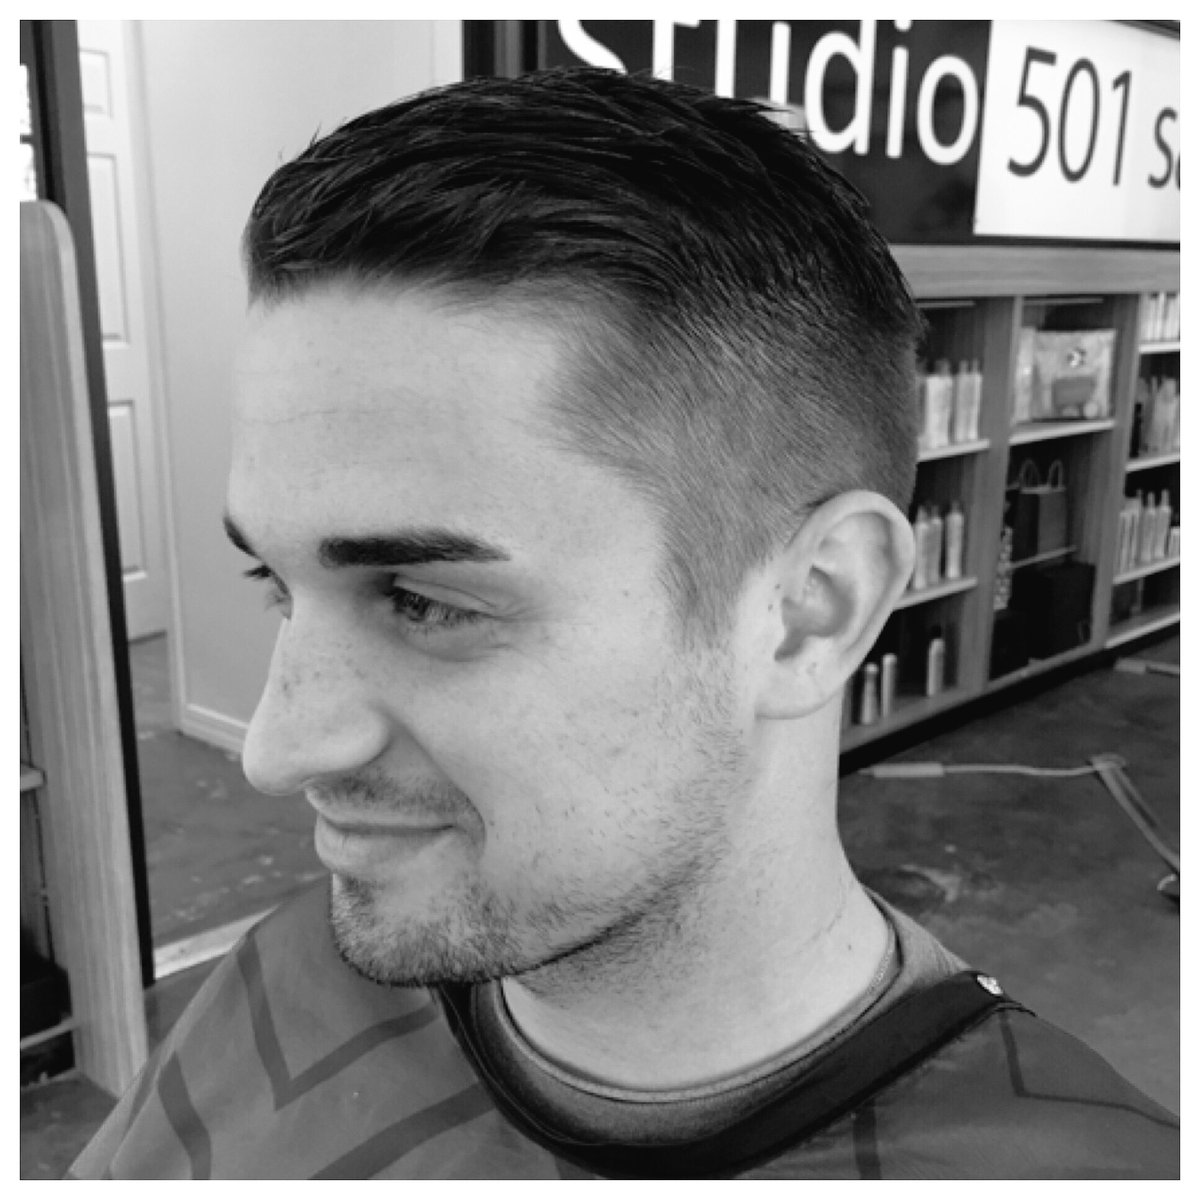 Studio 501 Salon On Twitter Classic Mens Haircut Complete With A